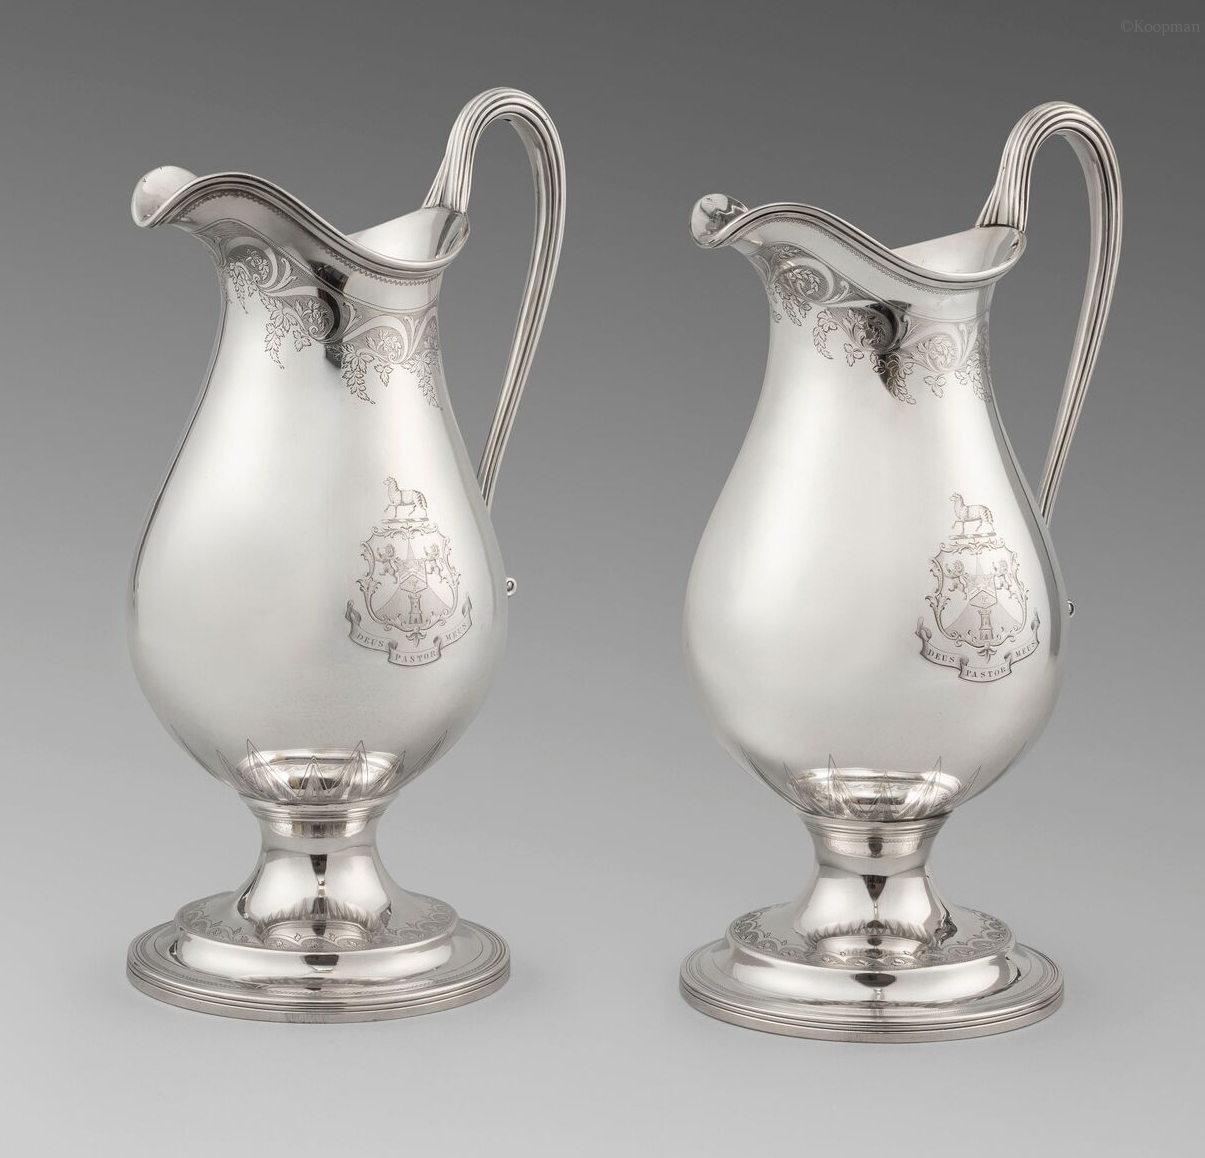 A Rare Pair of George III Jugs